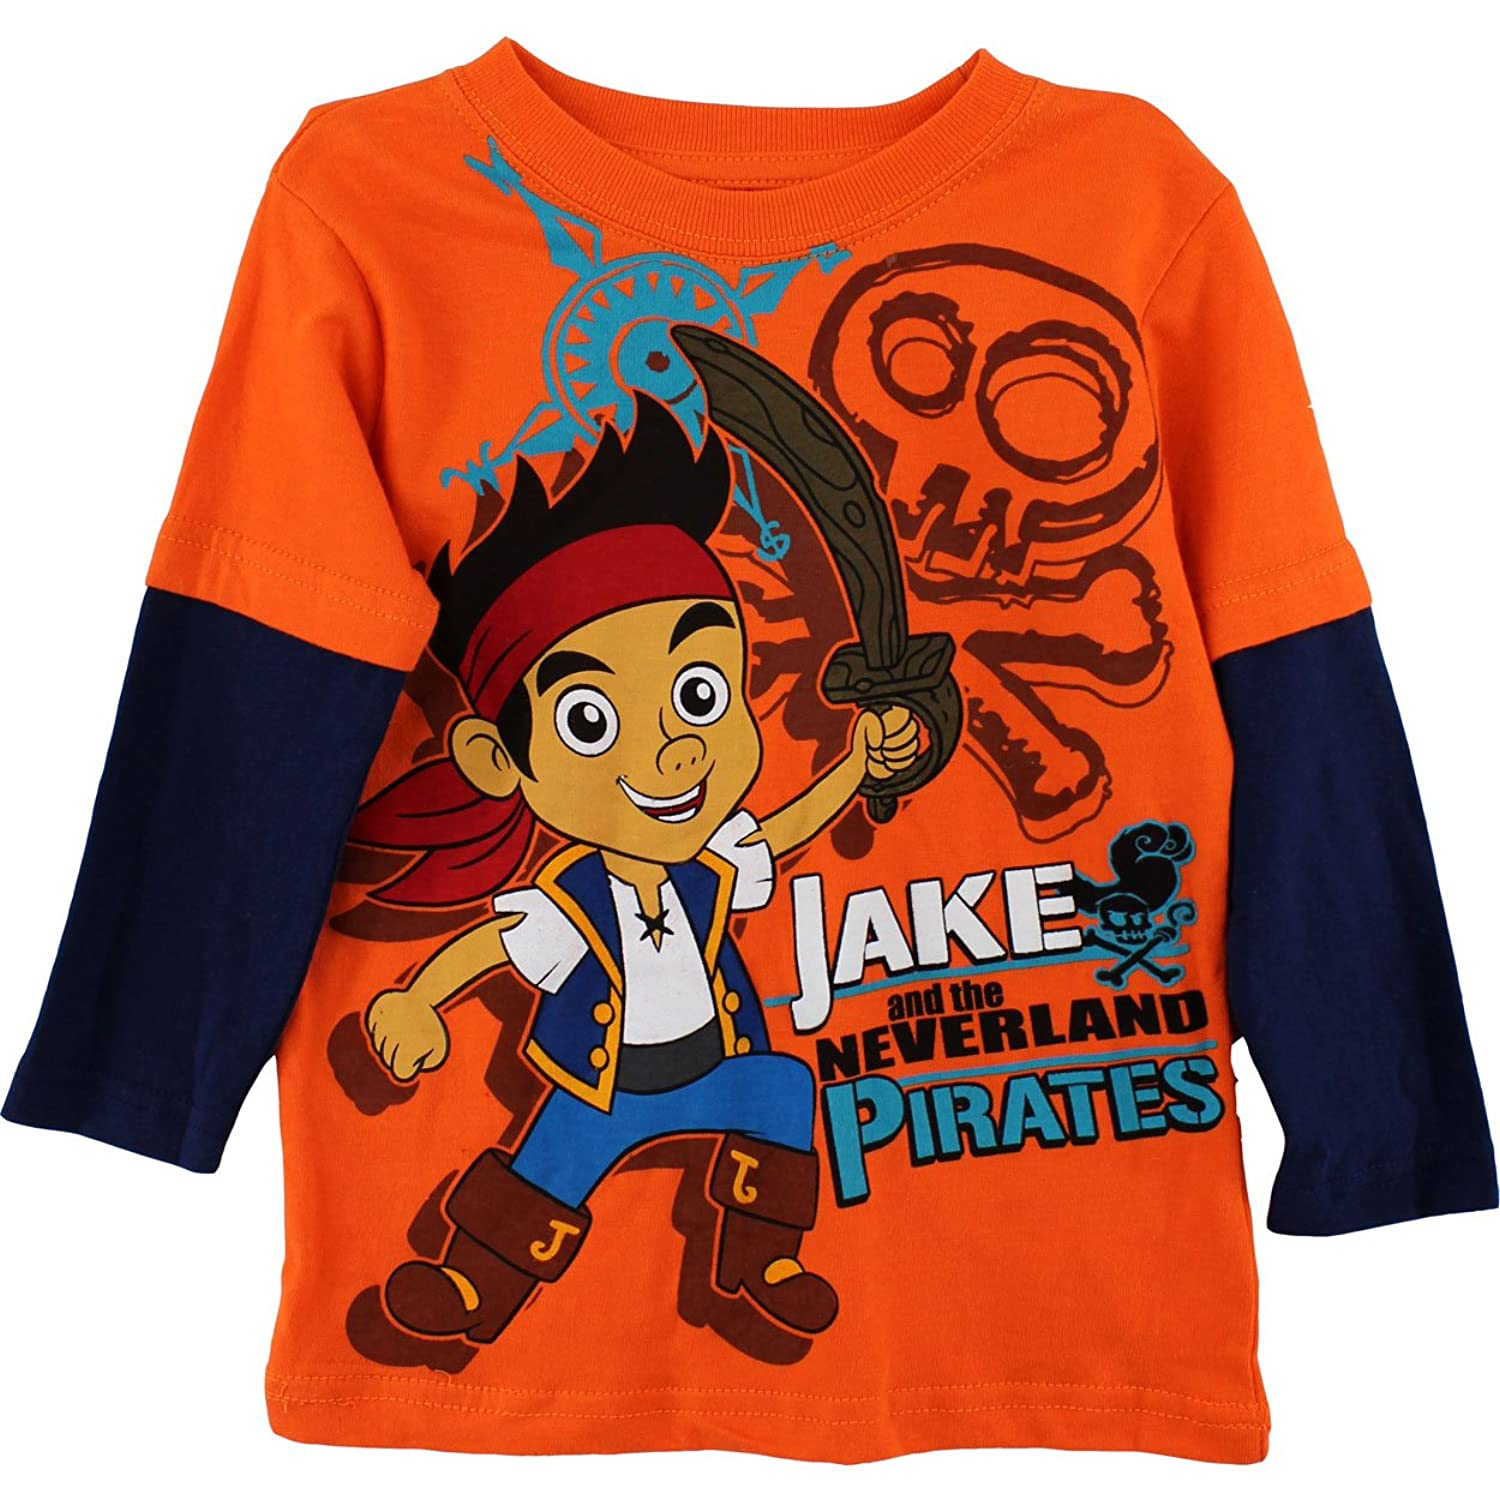 Disney Jake and the Never Land Pirates Layered Tshirt 2t4t 2T